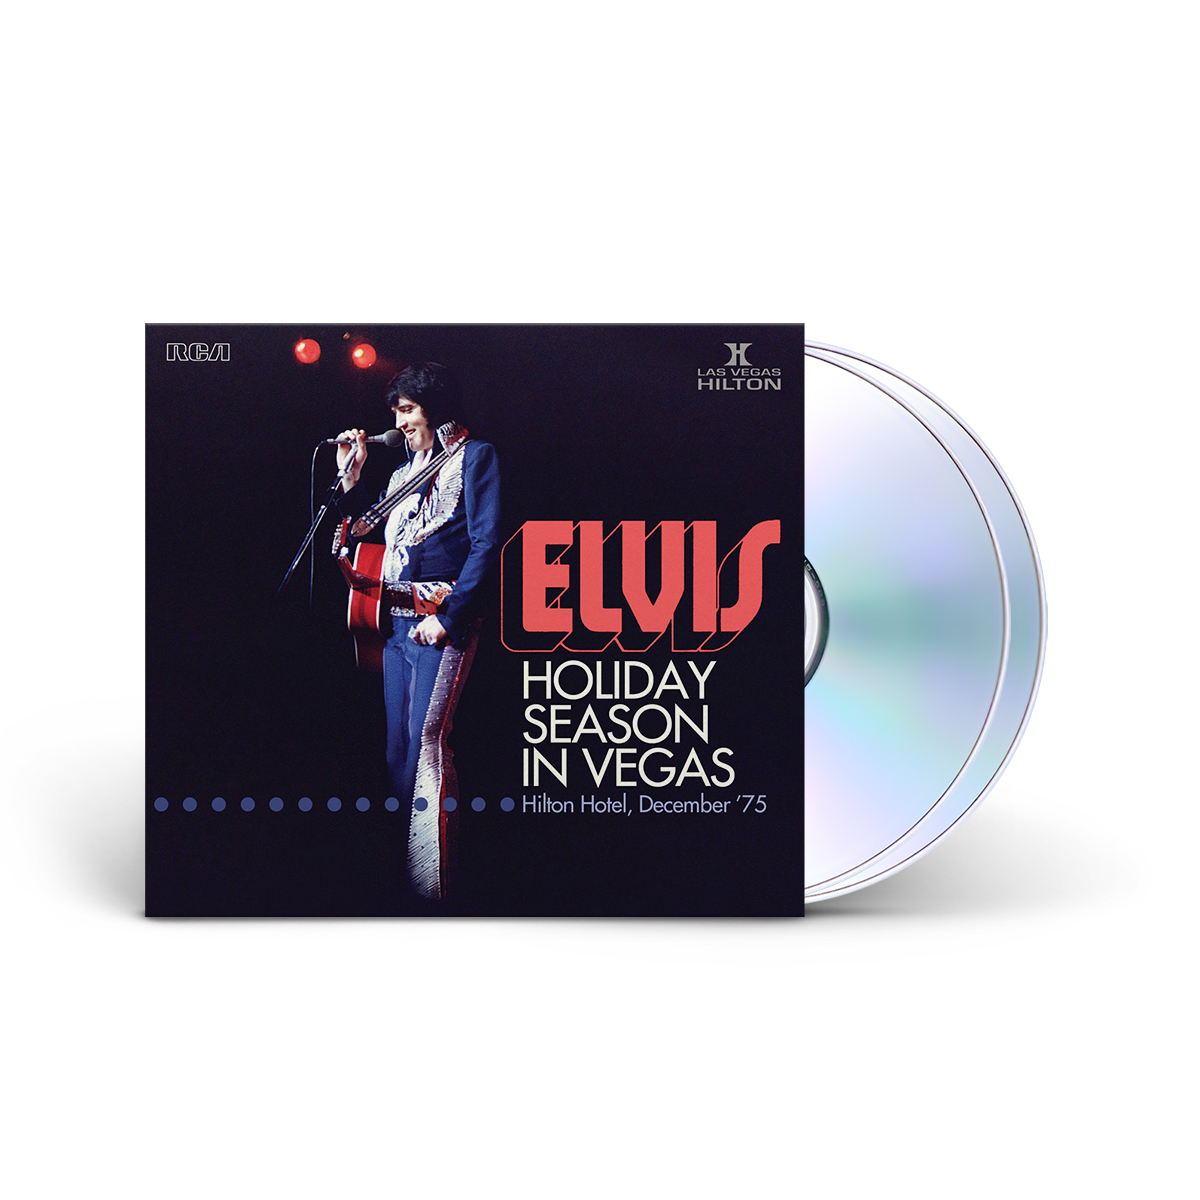 Elvis: Holiday Season in Vegas FTD (Hilton Hotel '75) 2-disc CD